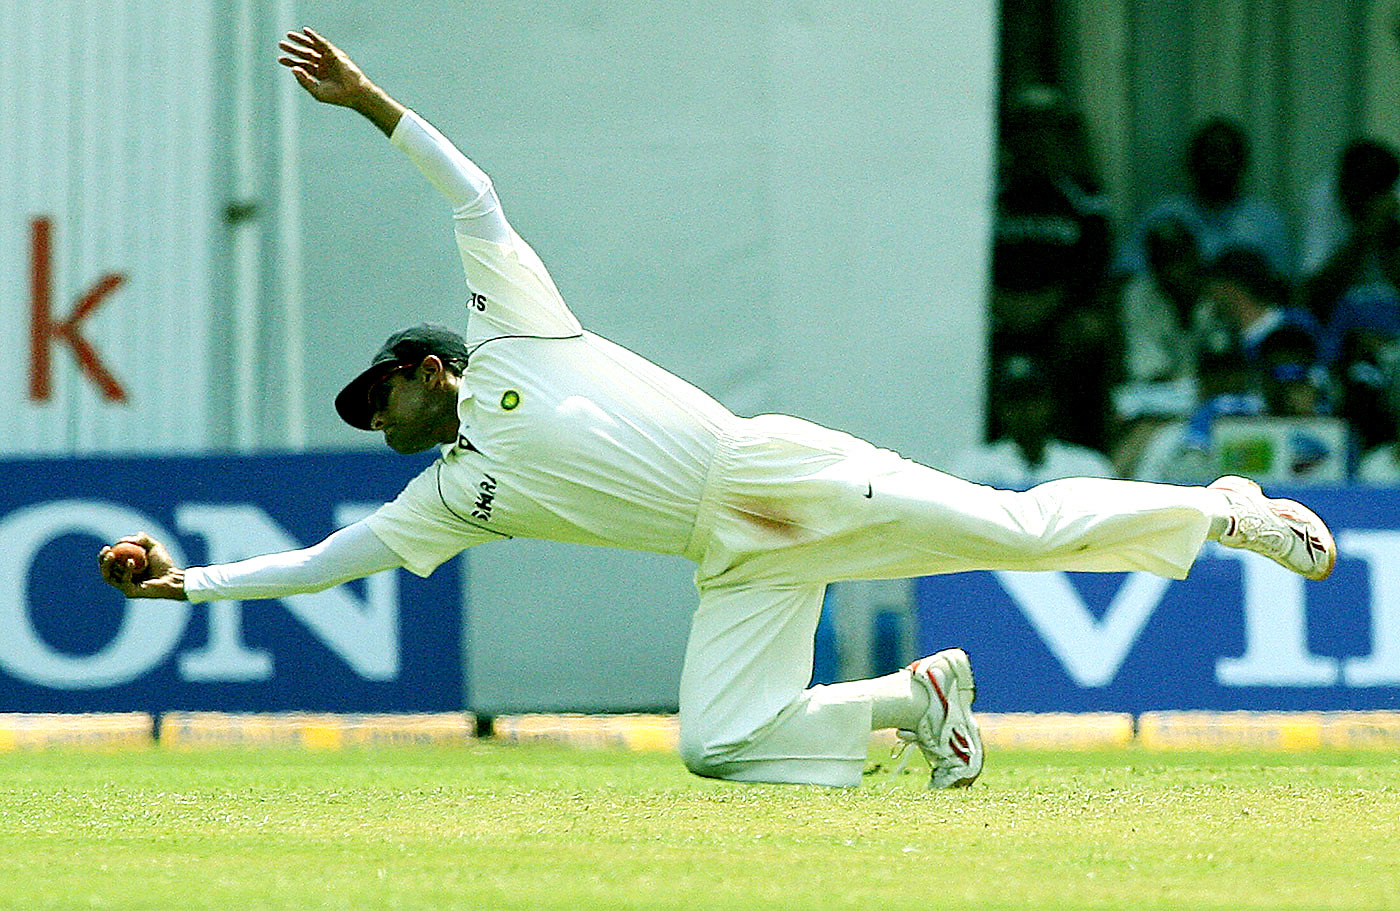 Plucky: Dravid's catching was among the reasons why India started performing better overseas